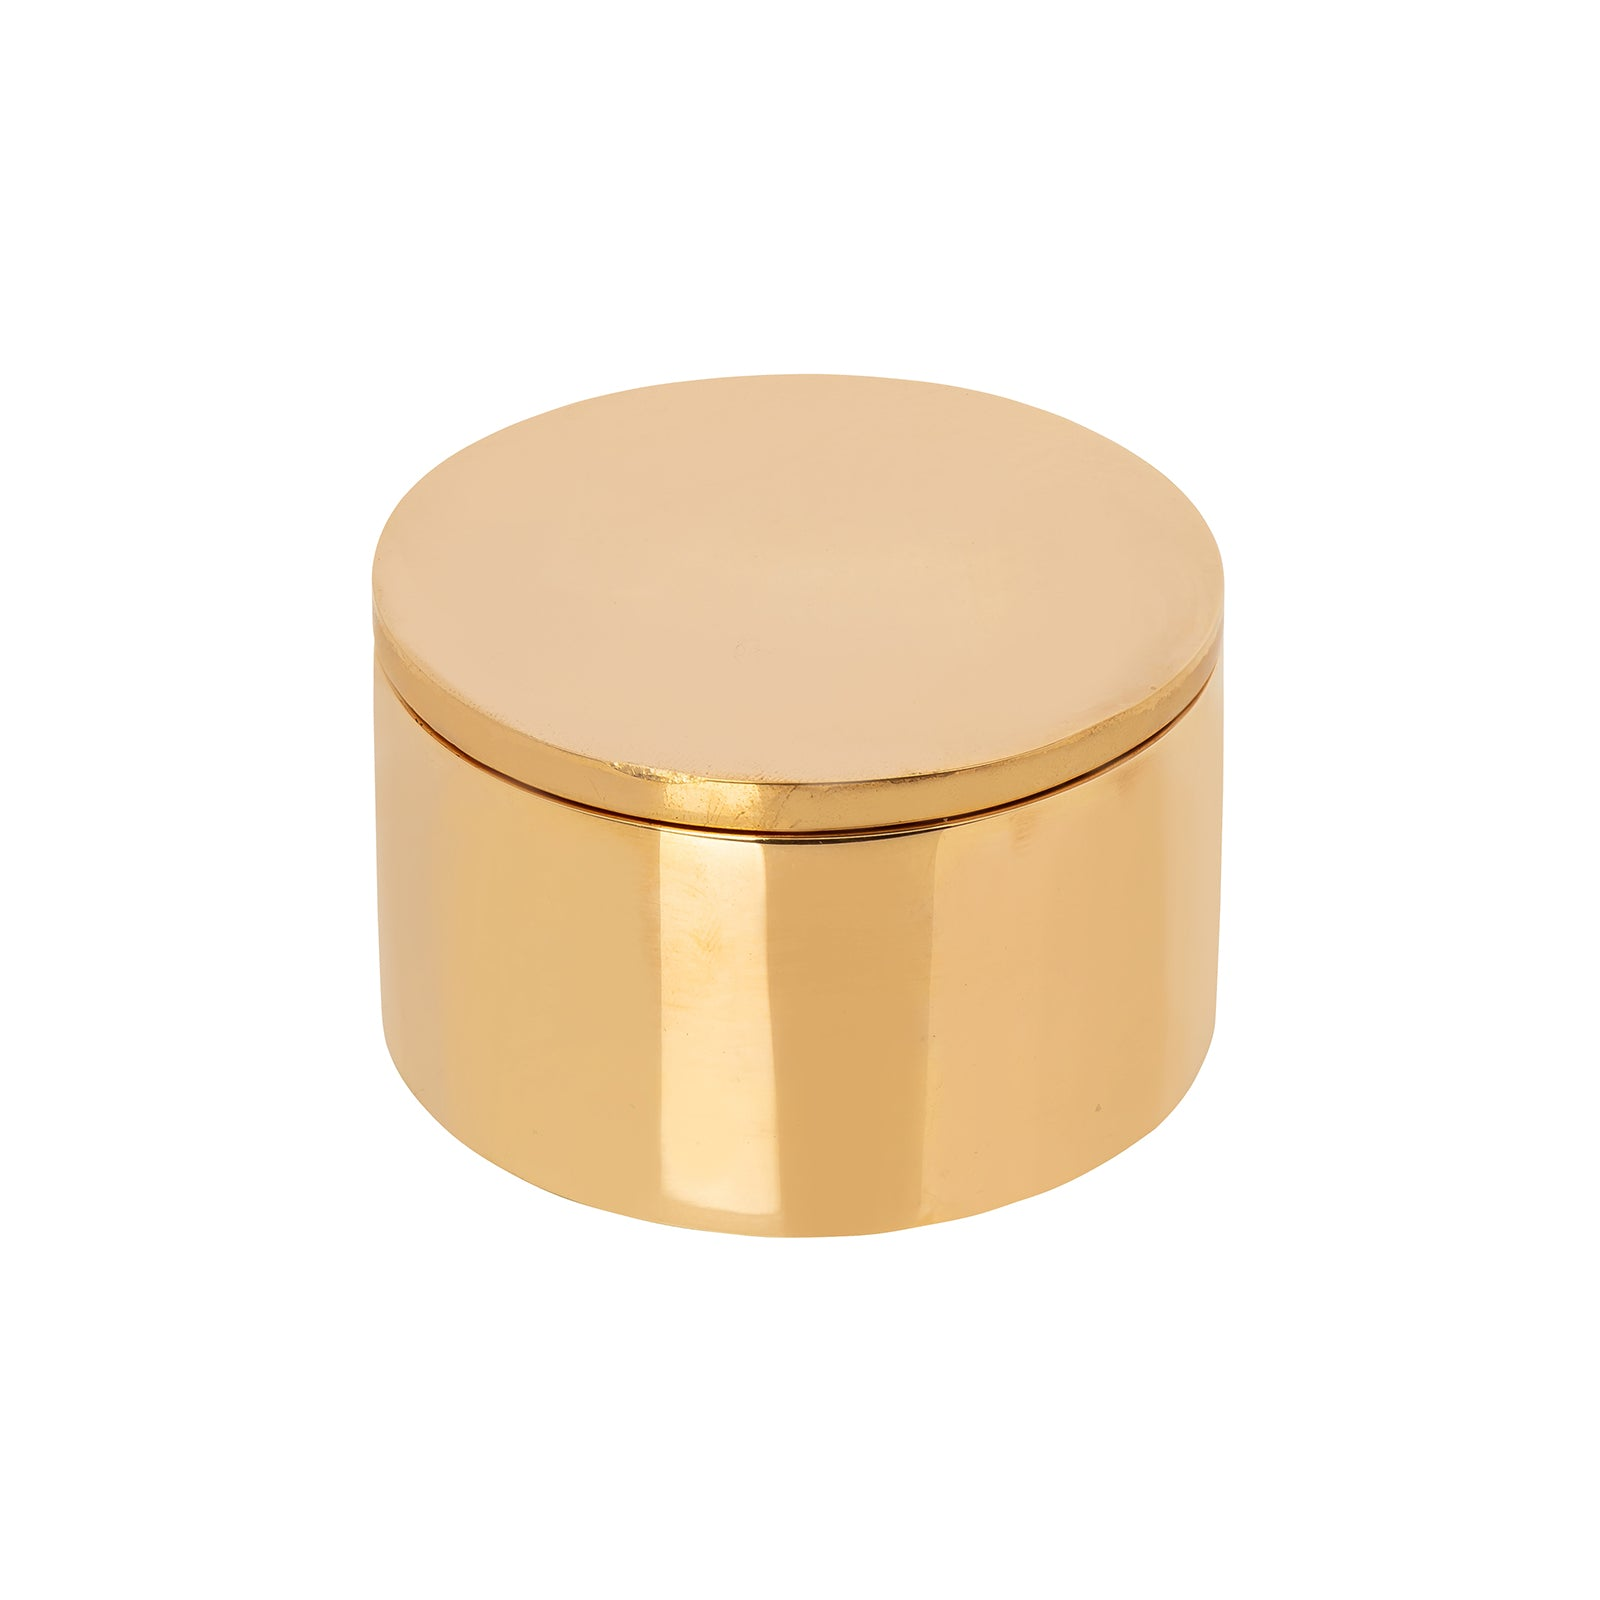 BE Home Round Architectural Brass Box - Small - Home & Decor - Broken English Jewelry